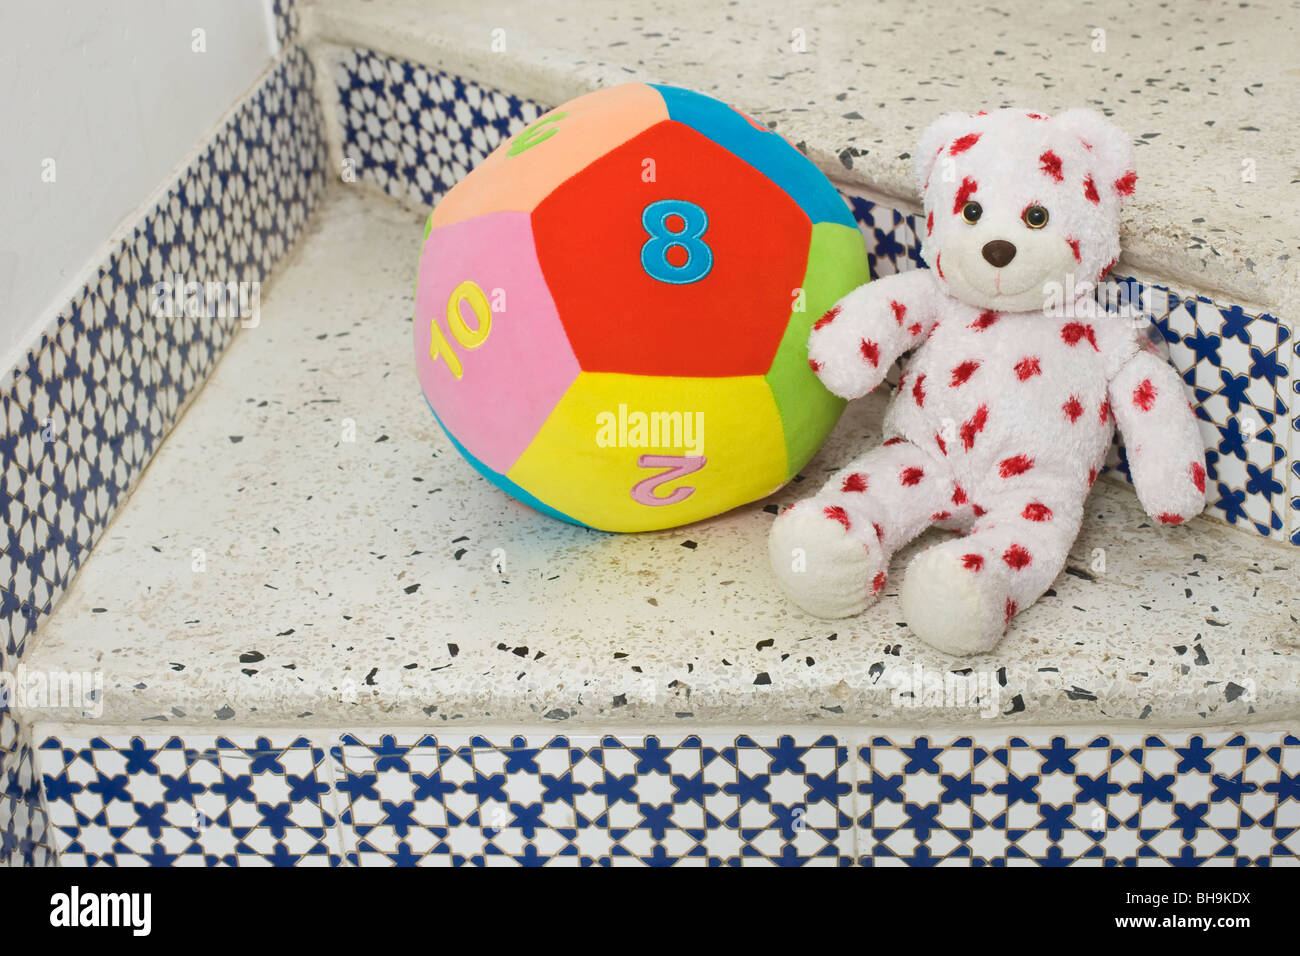 Child's teddy bear and soft ball toys - Stock Image